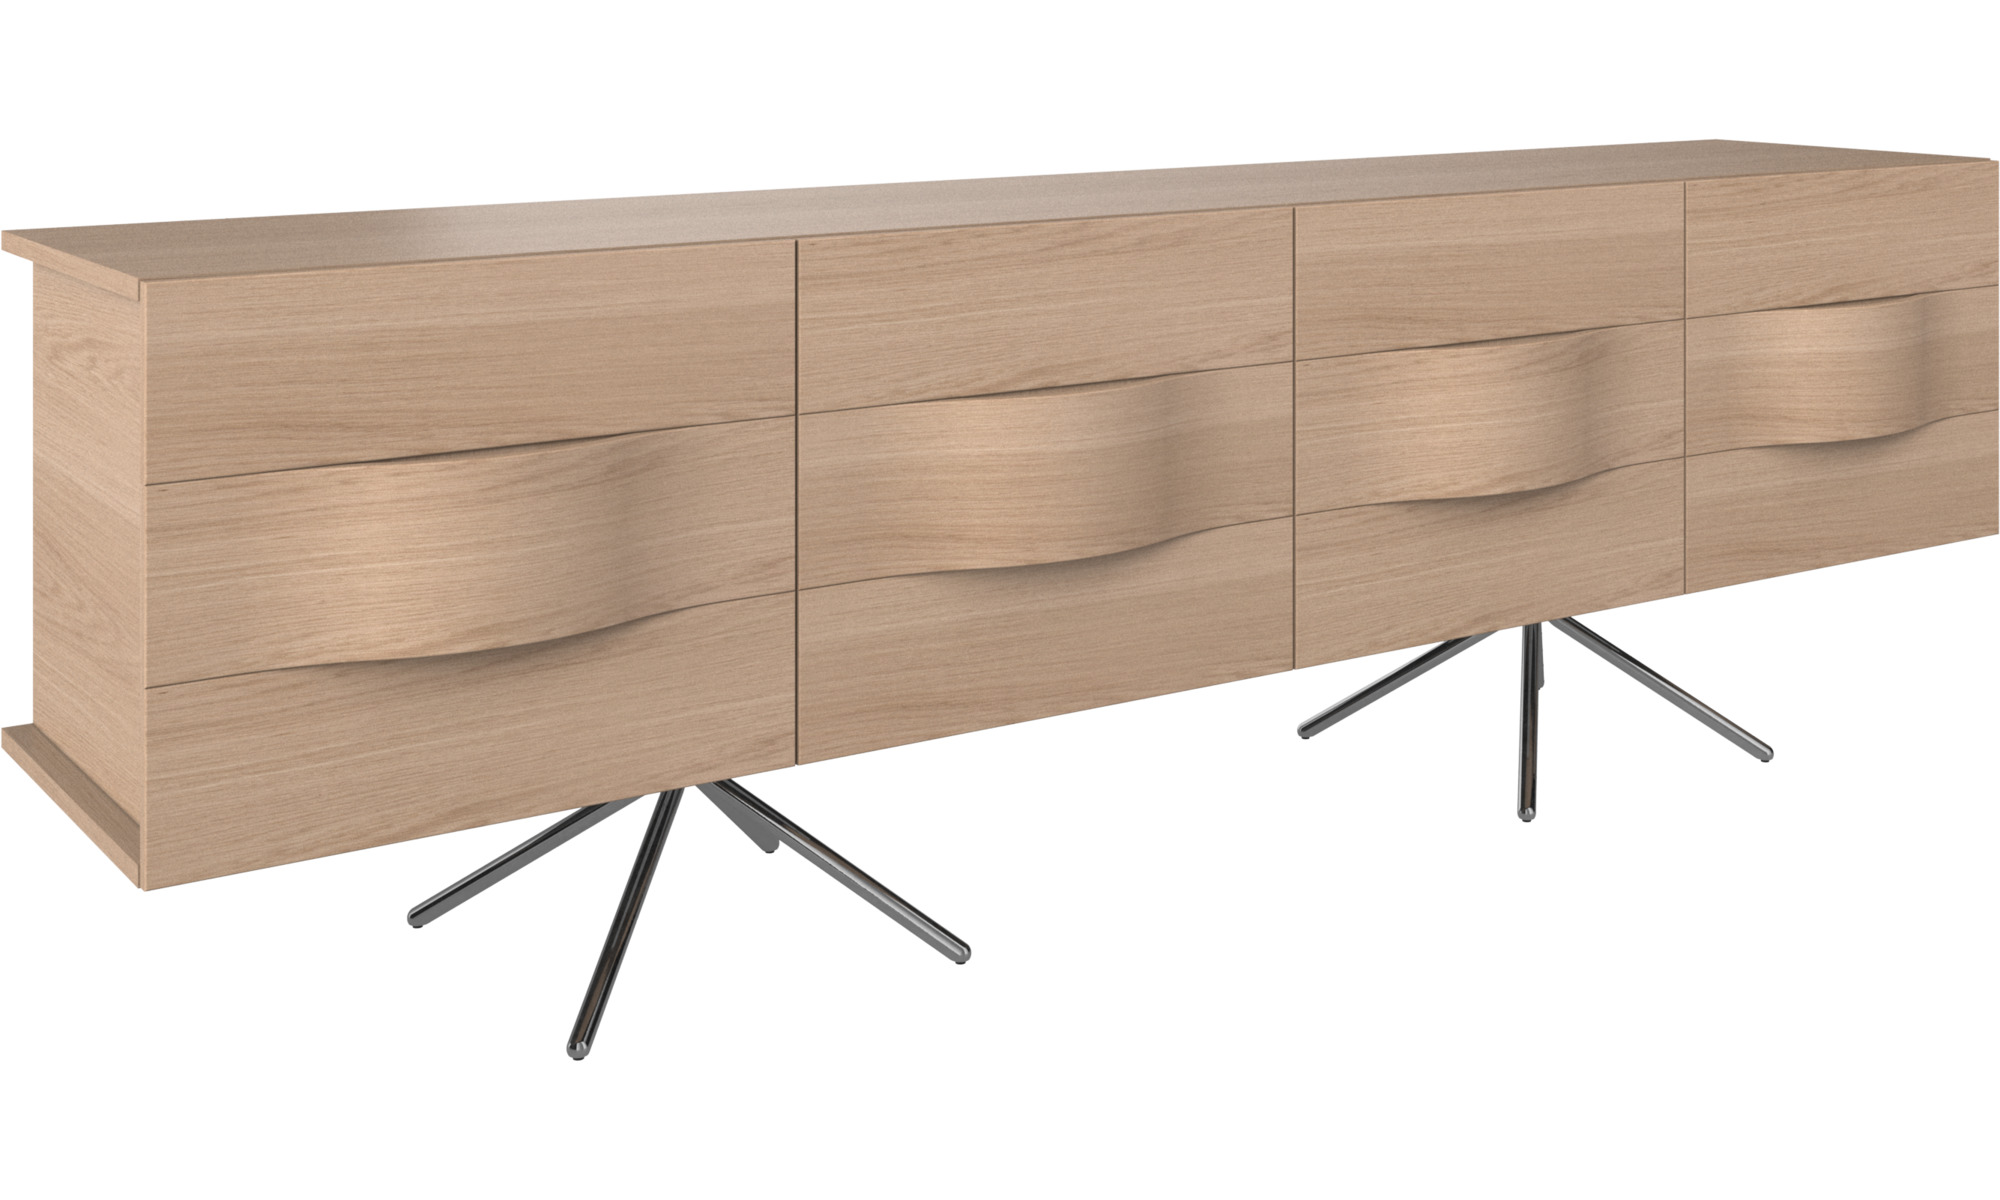 sideboards ottawa sideboard boconcept. Black Bedroom Furniture Sets. Home Design Ideas